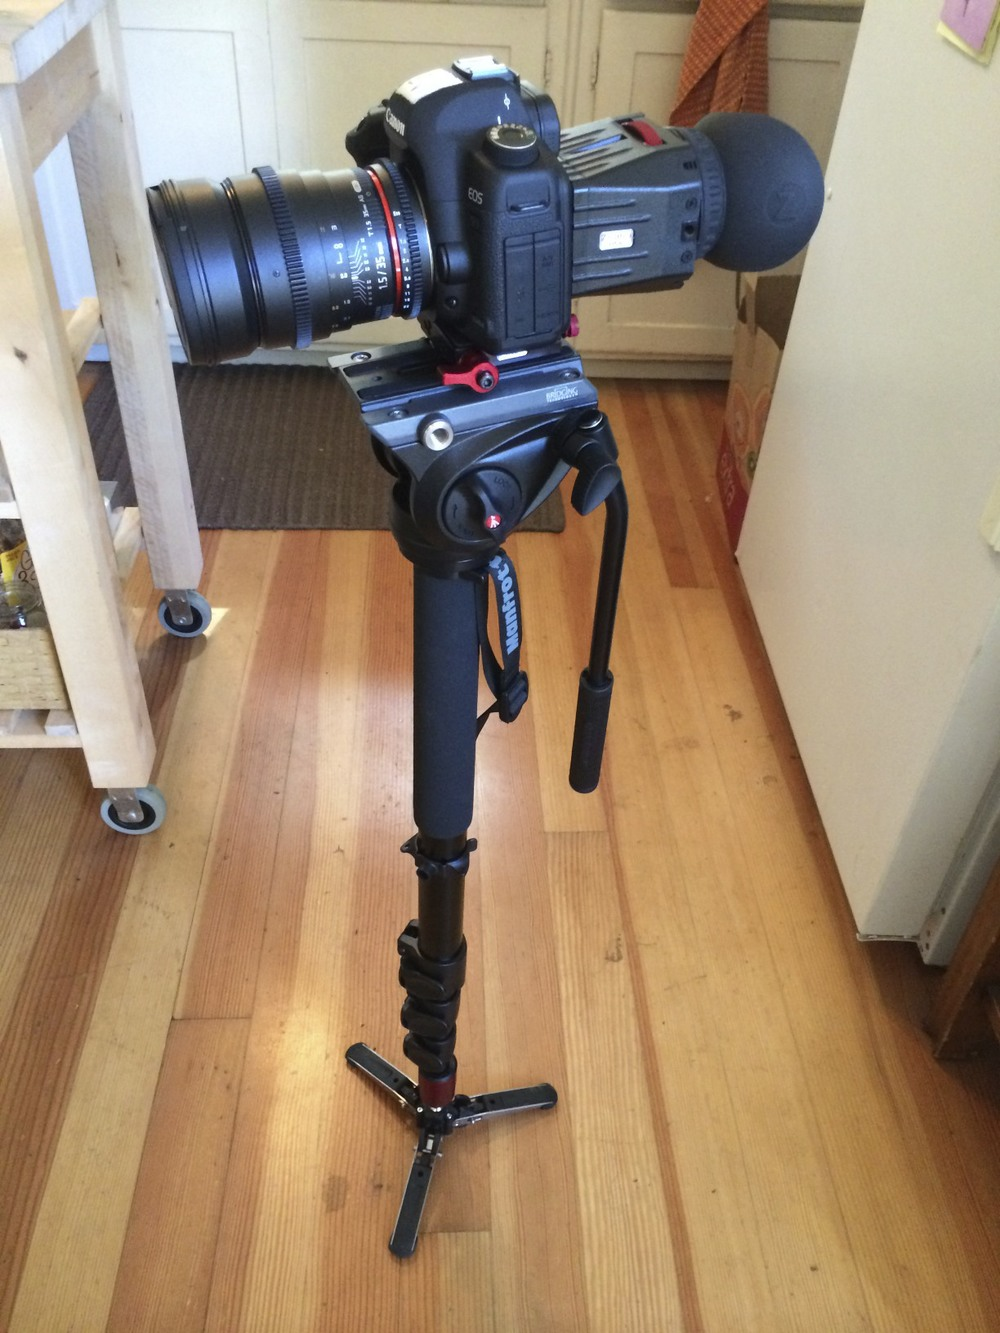 The main filming apparatus.